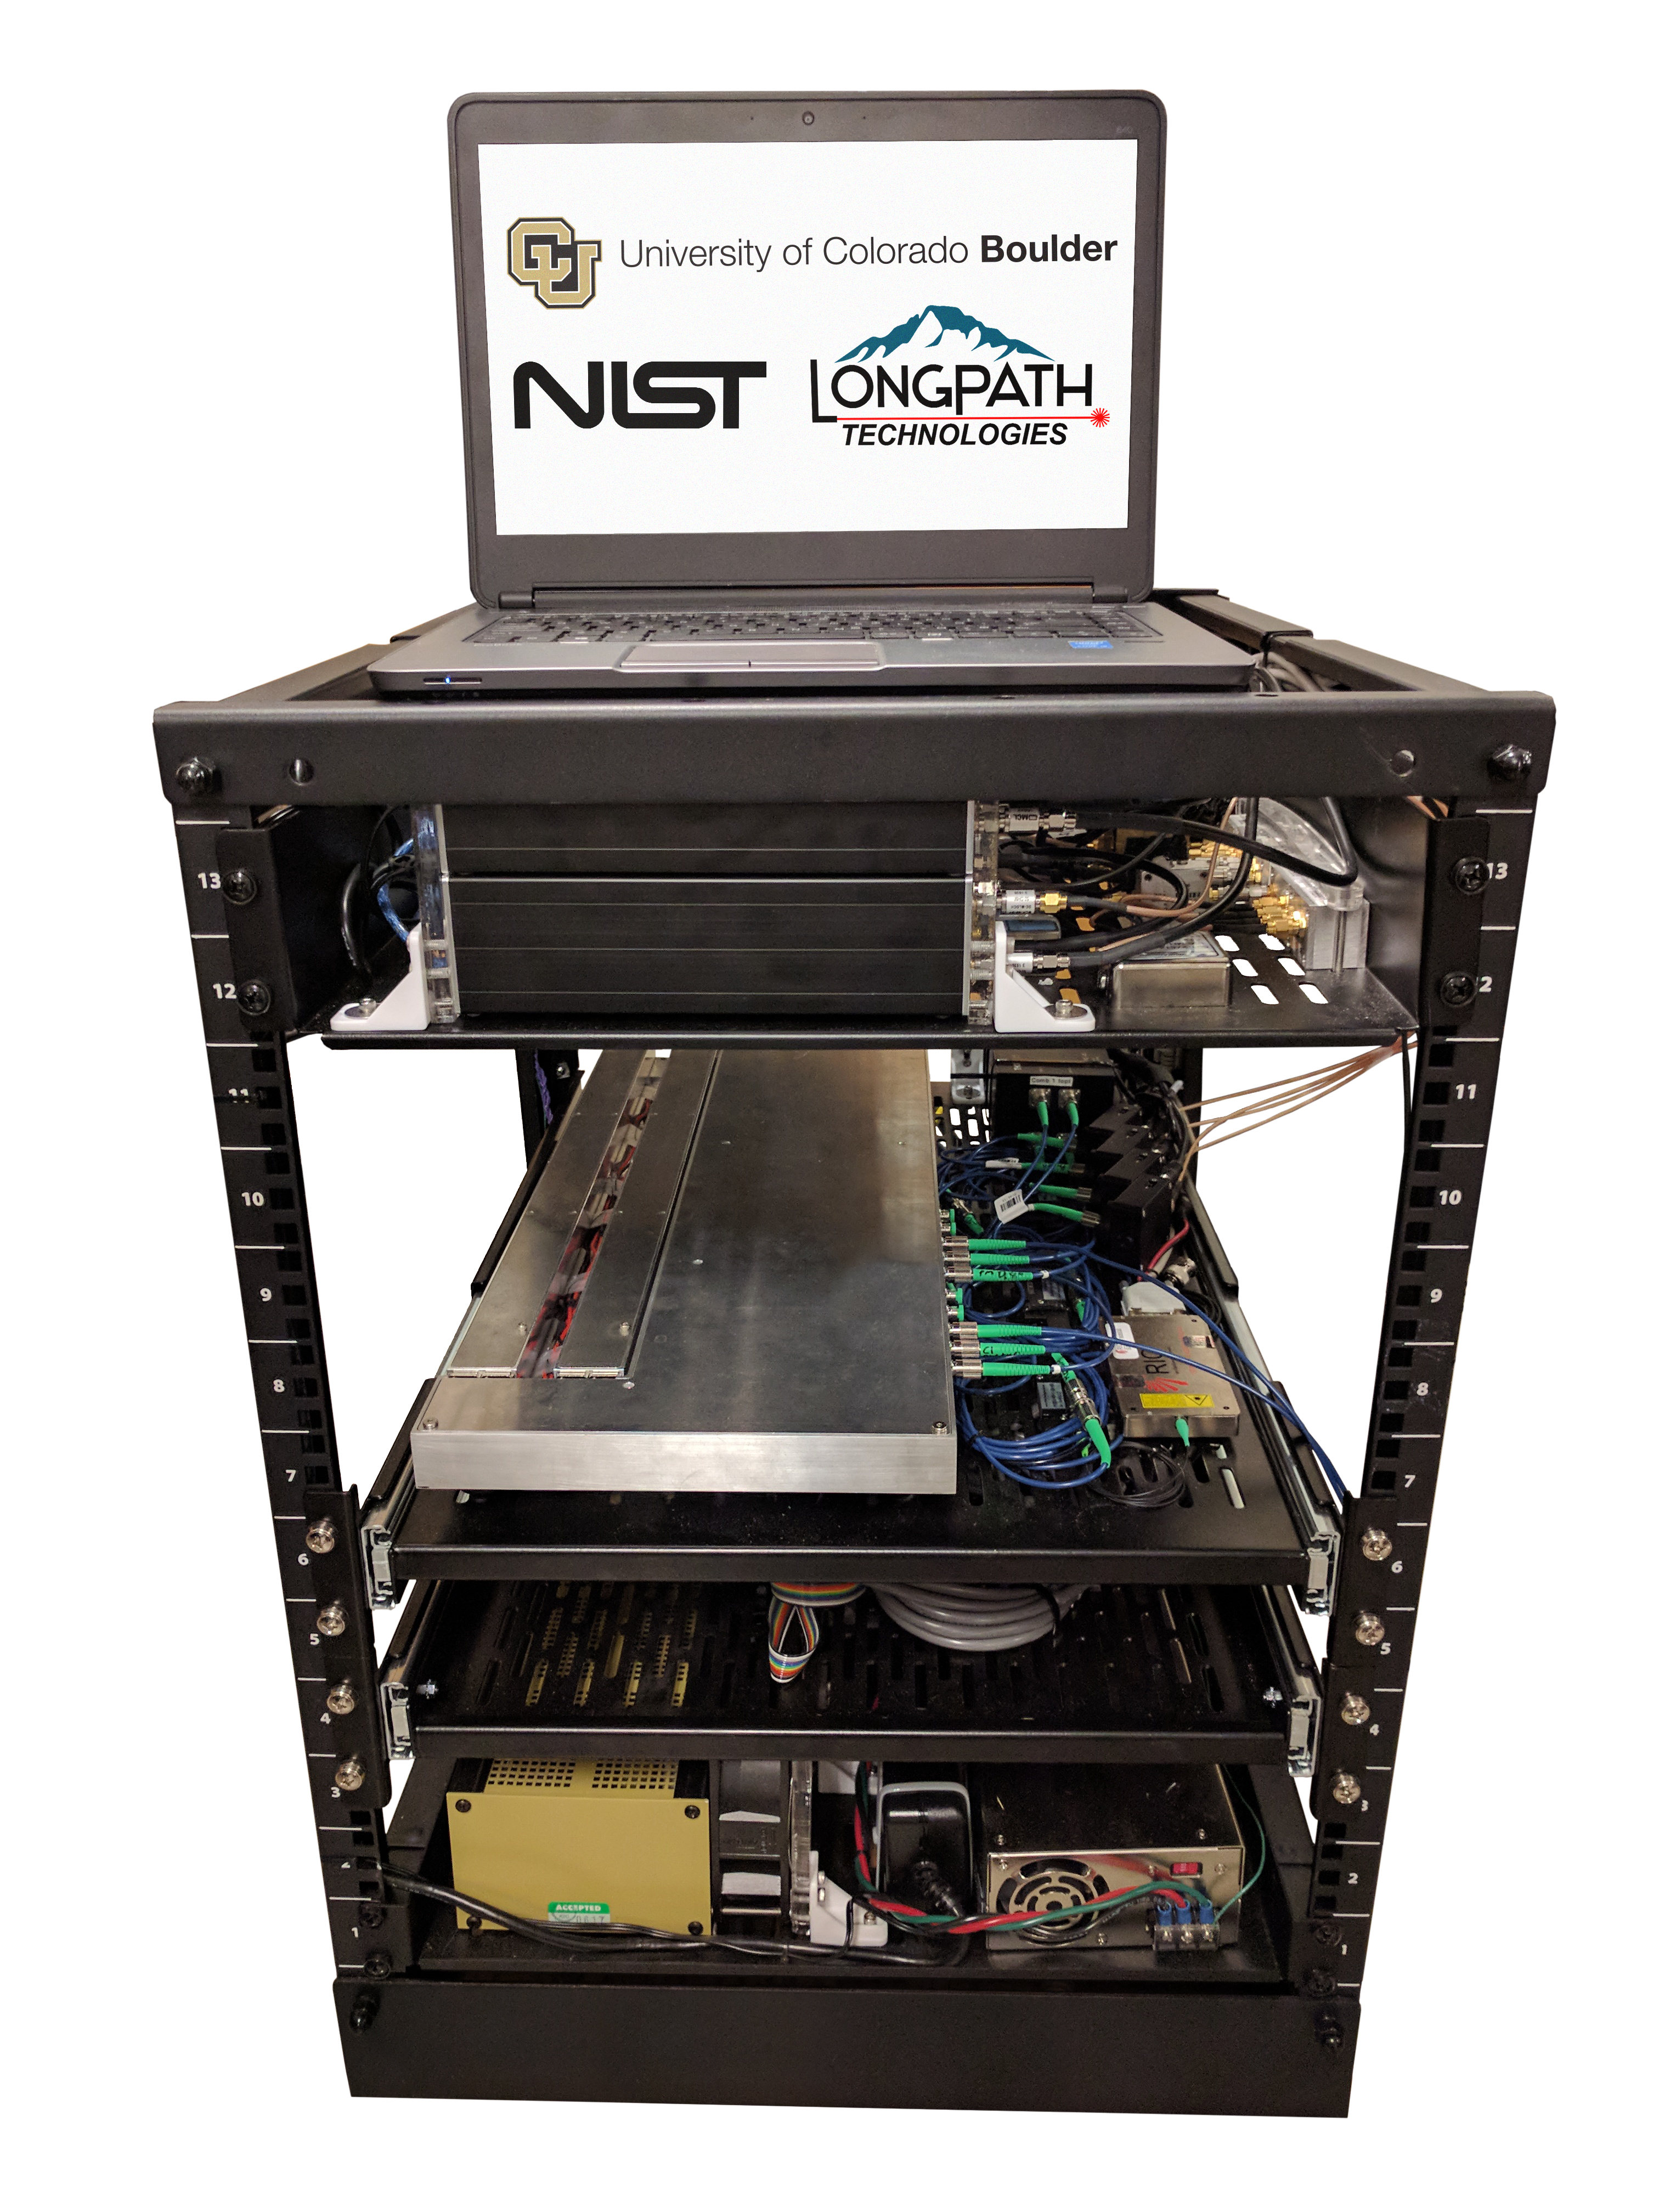 image of the laser frequency comb apparatus, a black metal box with electronics on its shelves and a laptop on top